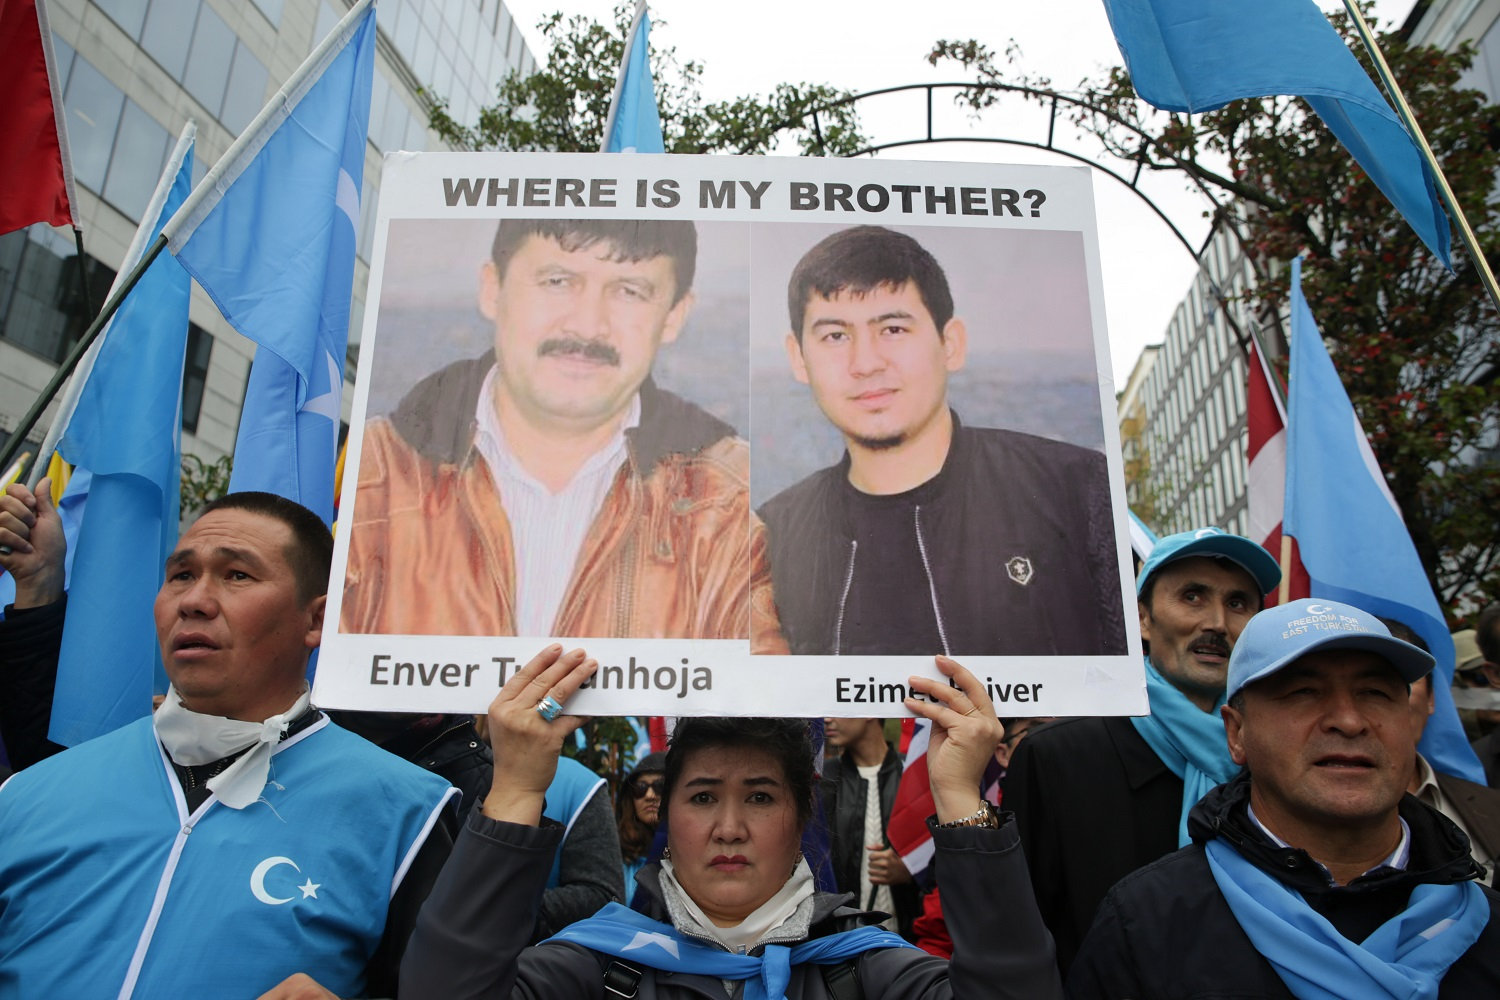 Protesters in Brussels march against human rights abuses against Uyghur Muslims in the Xinjiang region of western China. Photo: Aris Oikonomou/AFP.